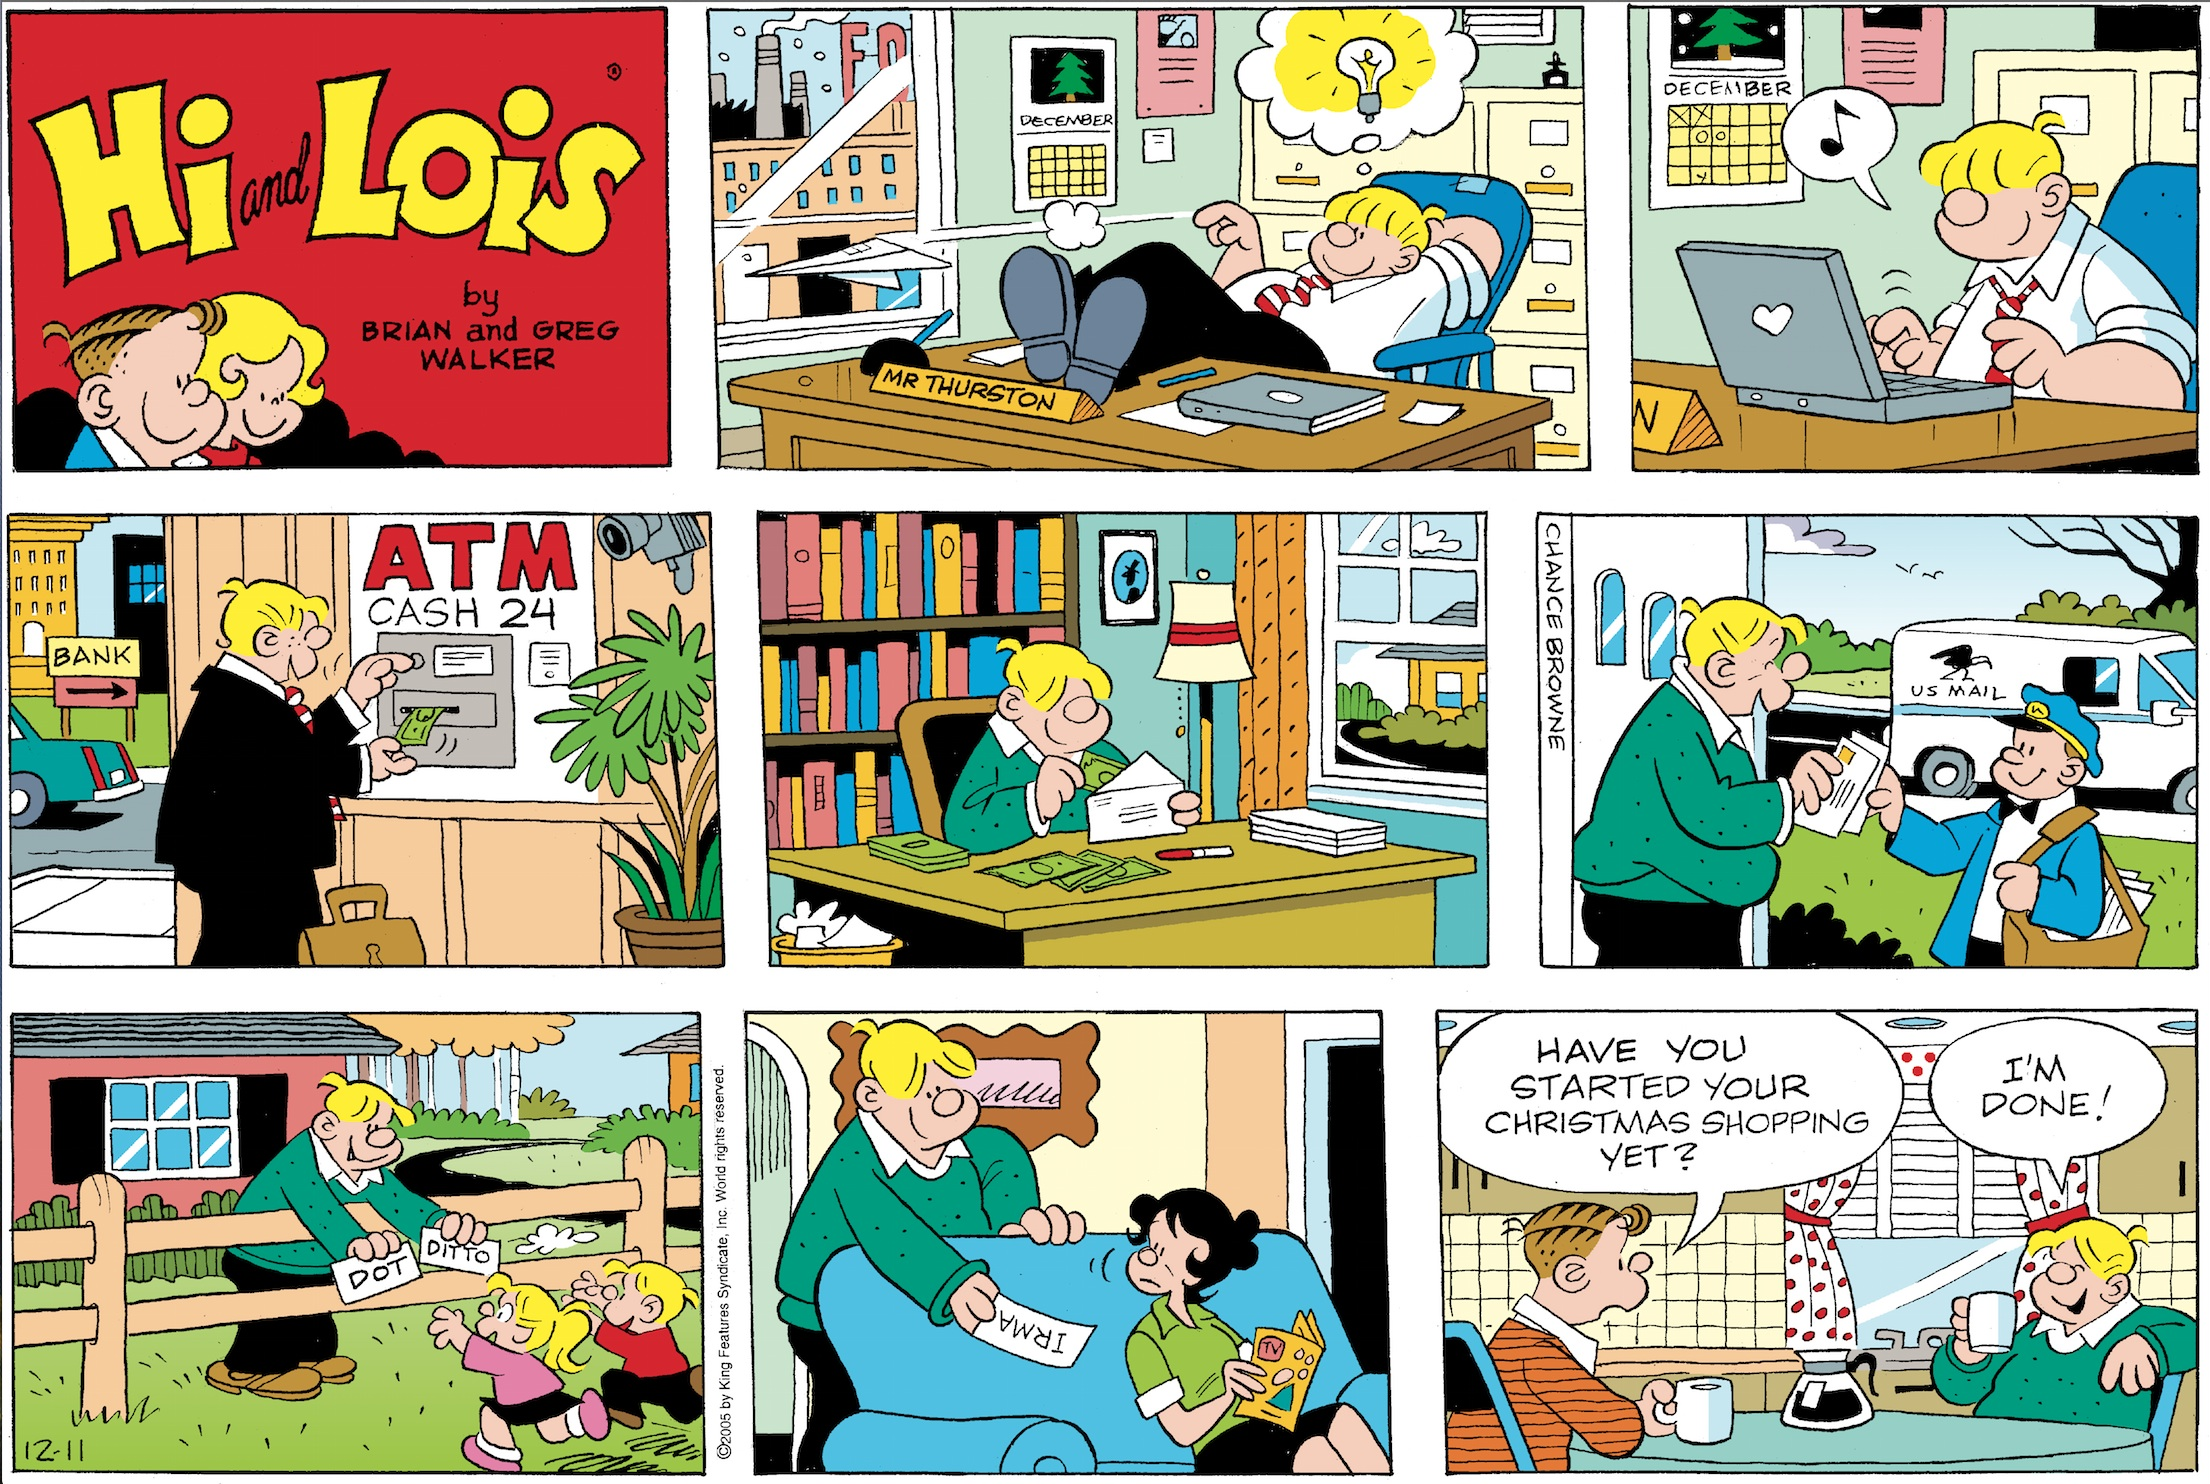 Hi and Lois Sunday page, December 11, 2005,